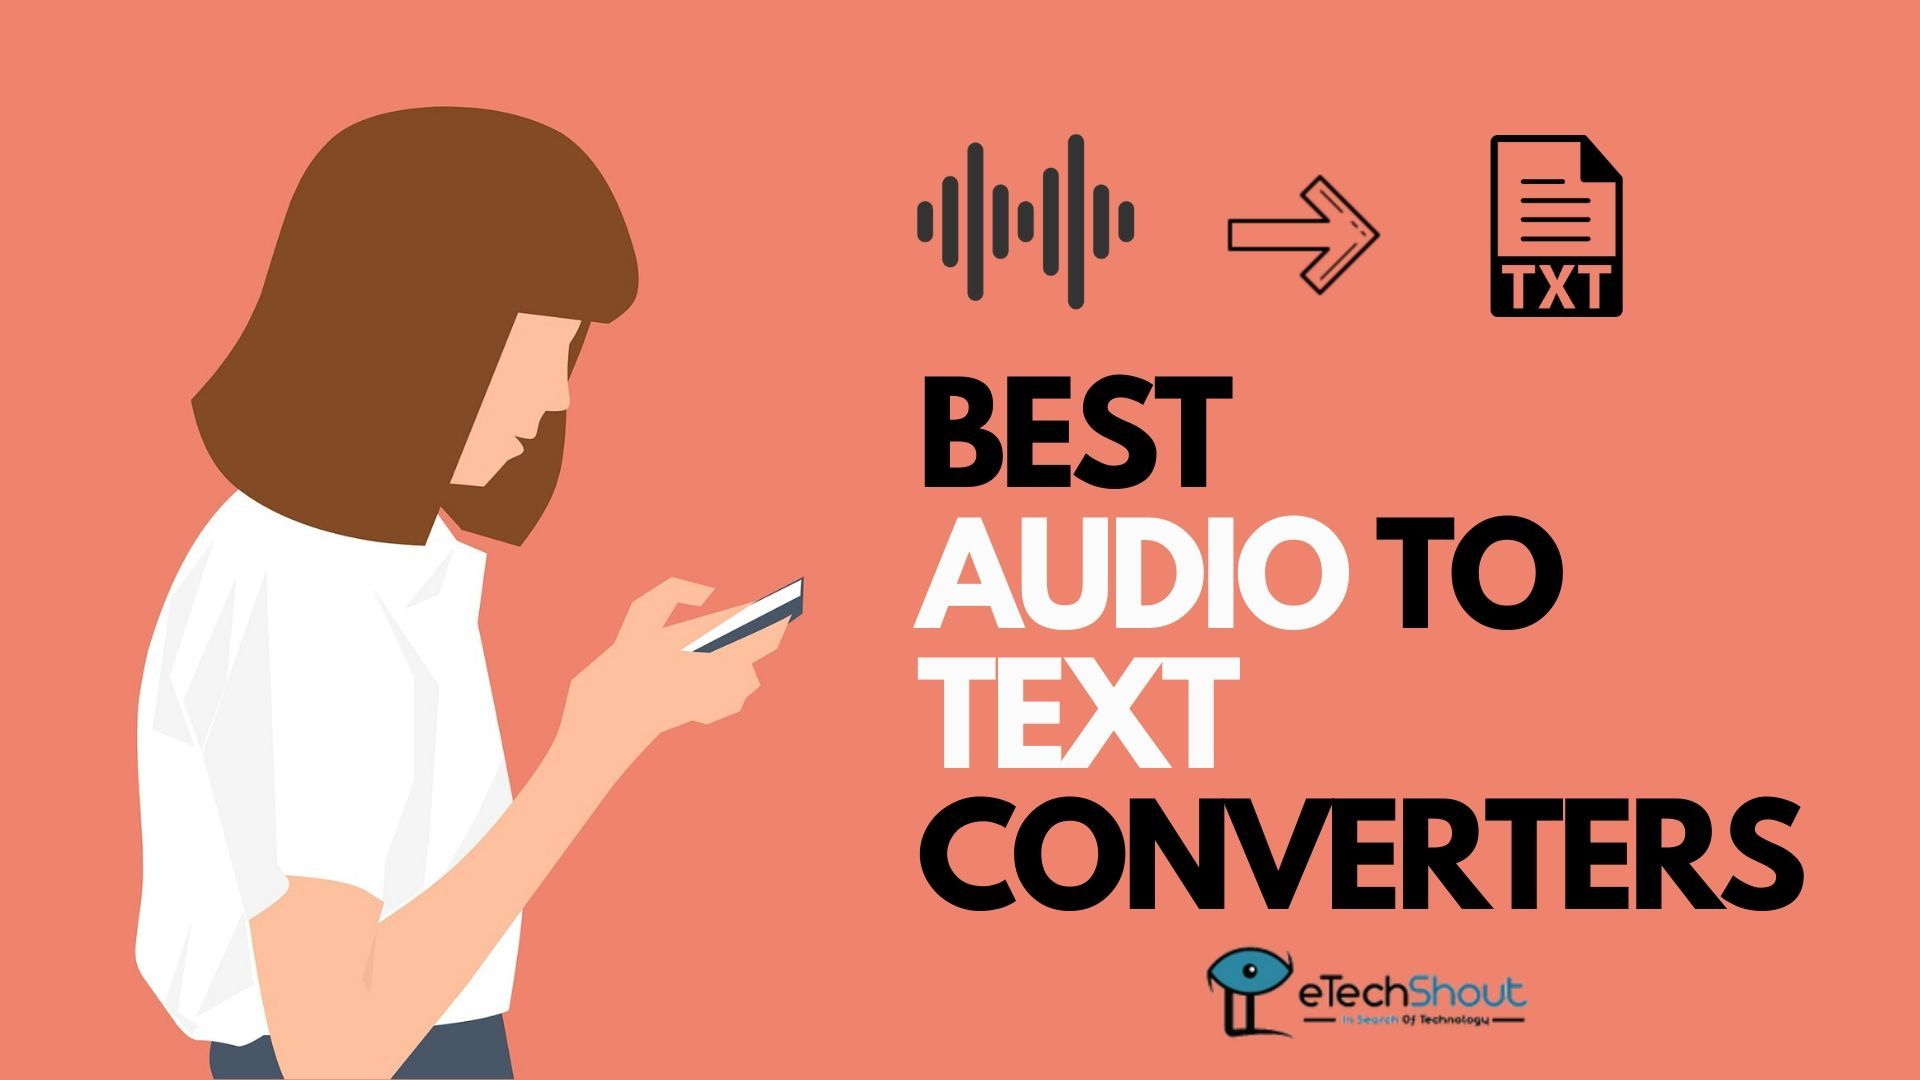 Free best Audio to Text Converters